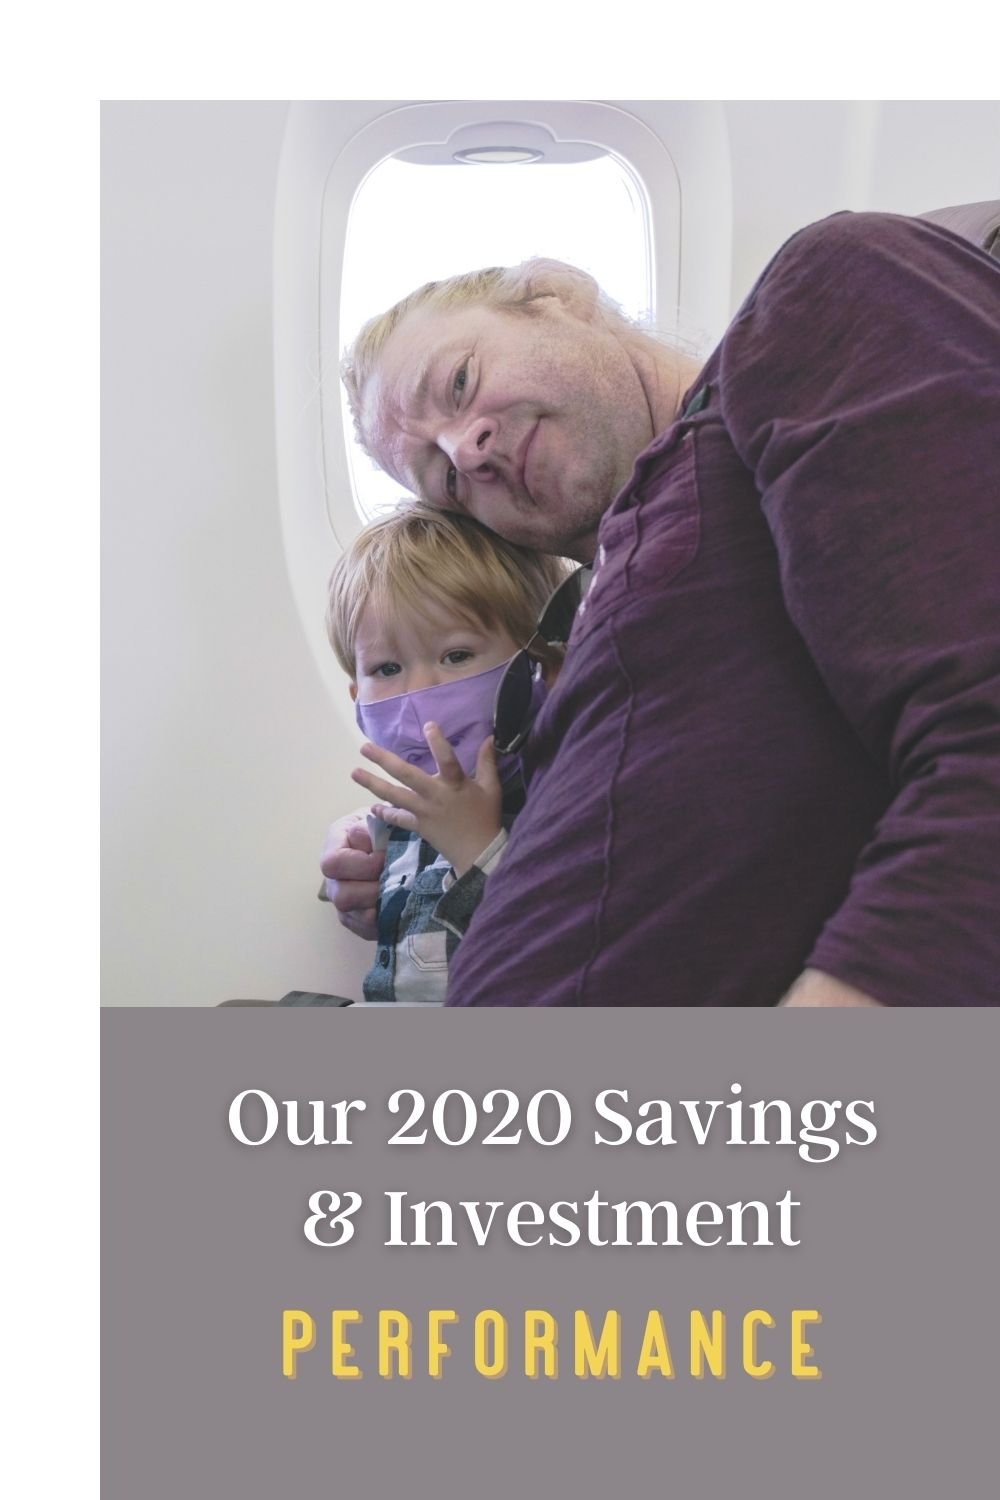 Liquid Savings Up 116% - And Other 2020 Outcomes